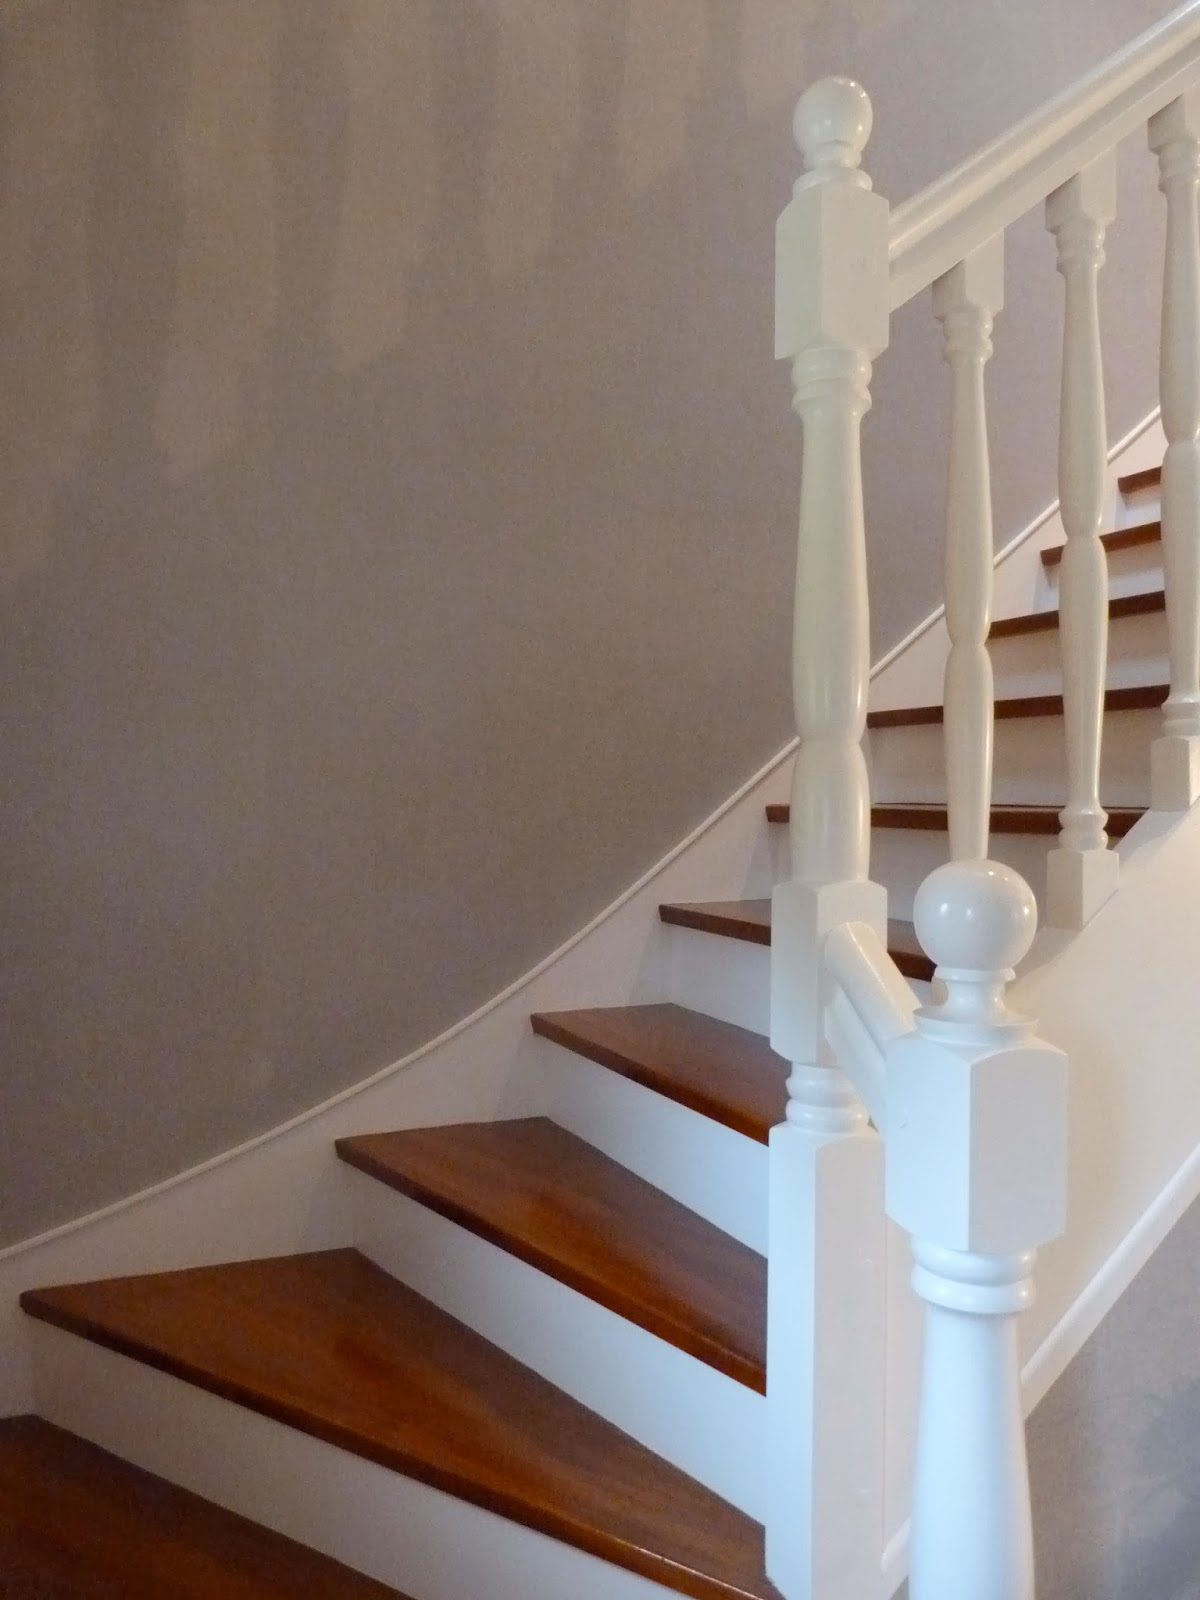 Anthracite d co r novation d 39 escalier for Peindre escalier en blanc